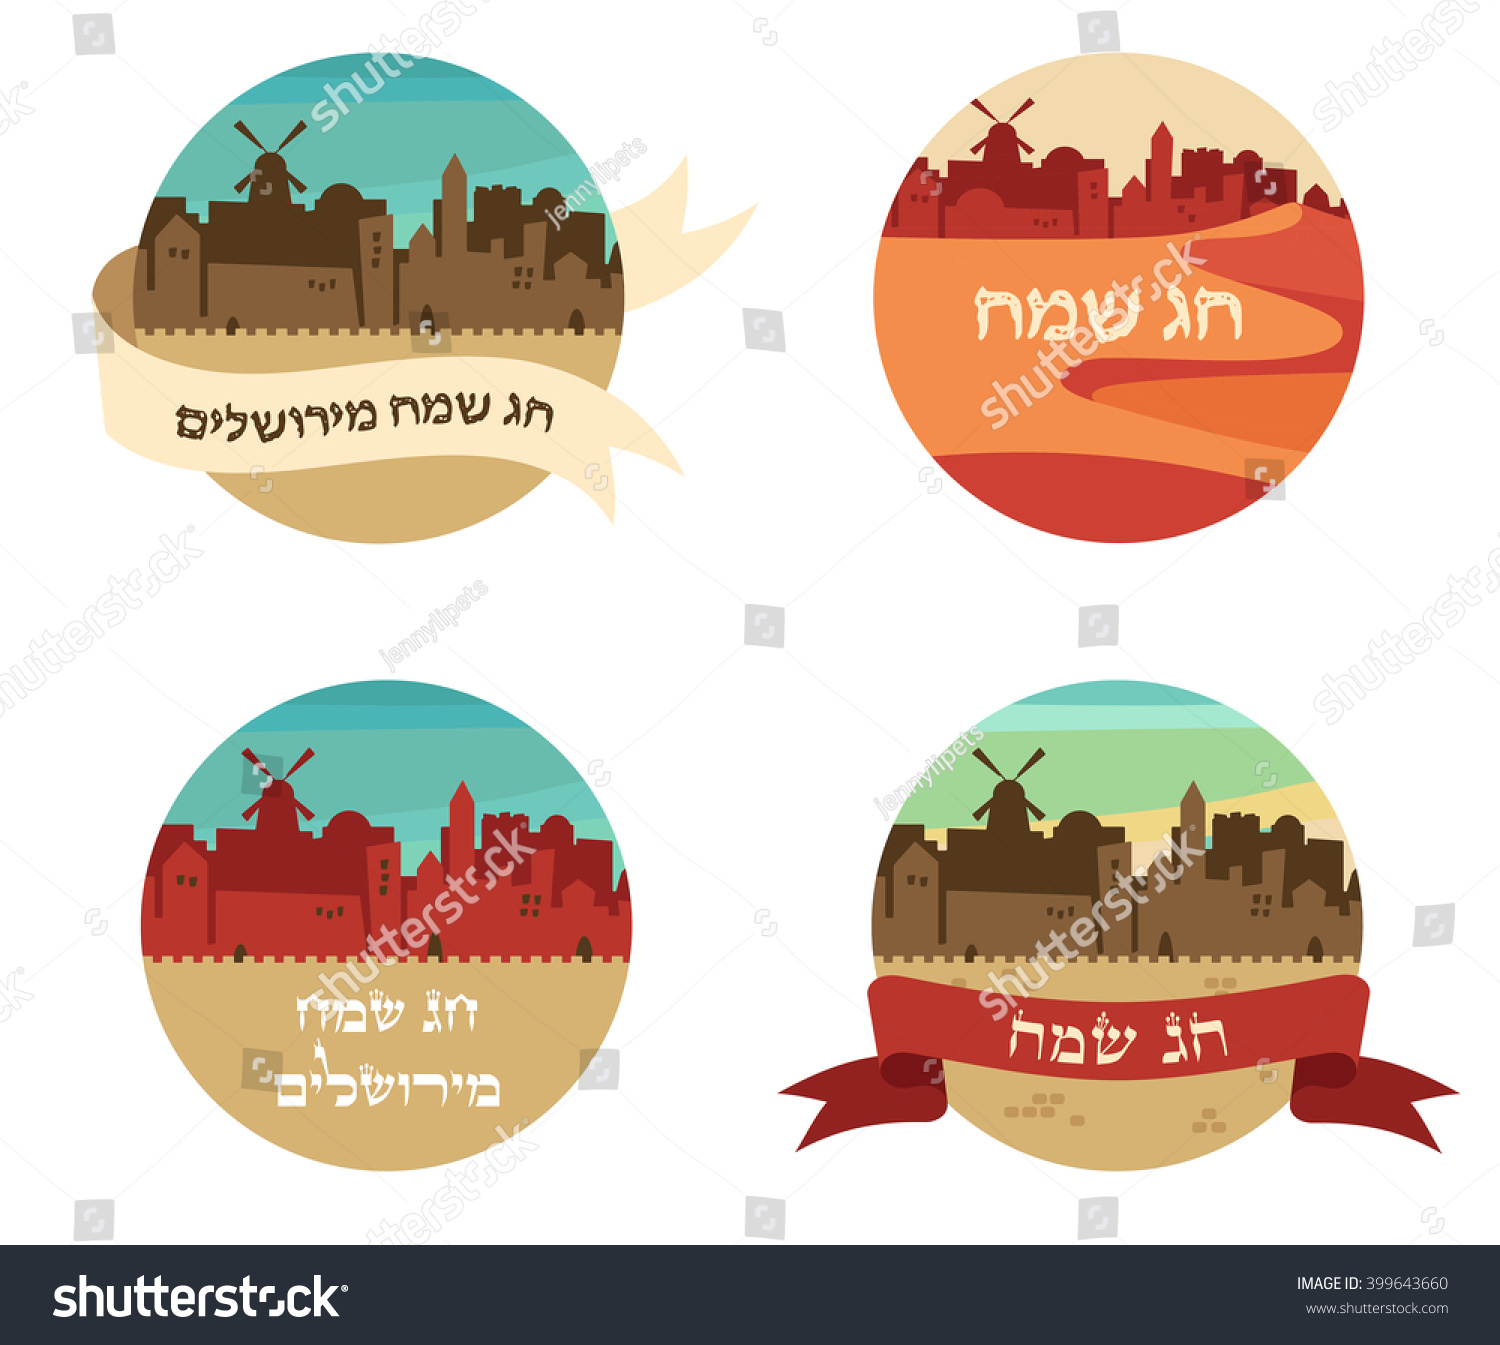 Happy Holidays Hebrew Greeting Card Design Stock Vector 399643660